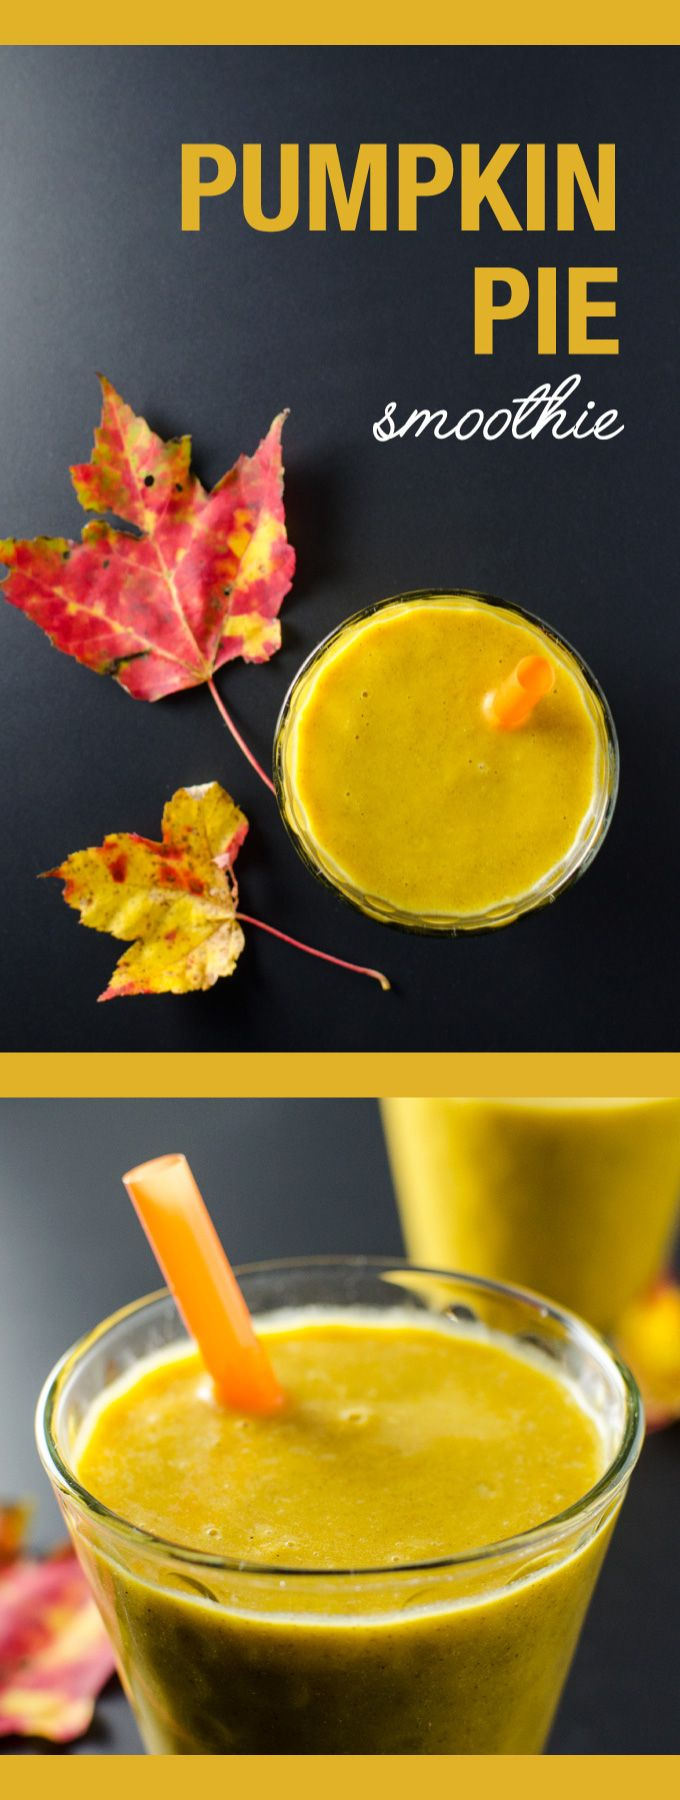 Pumpkin Pie Smoothie - why spend time making a pie? This smoothie recipe is a healthy snack that tastes like a dessert. It's quick and easy and vegan and gluten free | VeggiePrimer.com